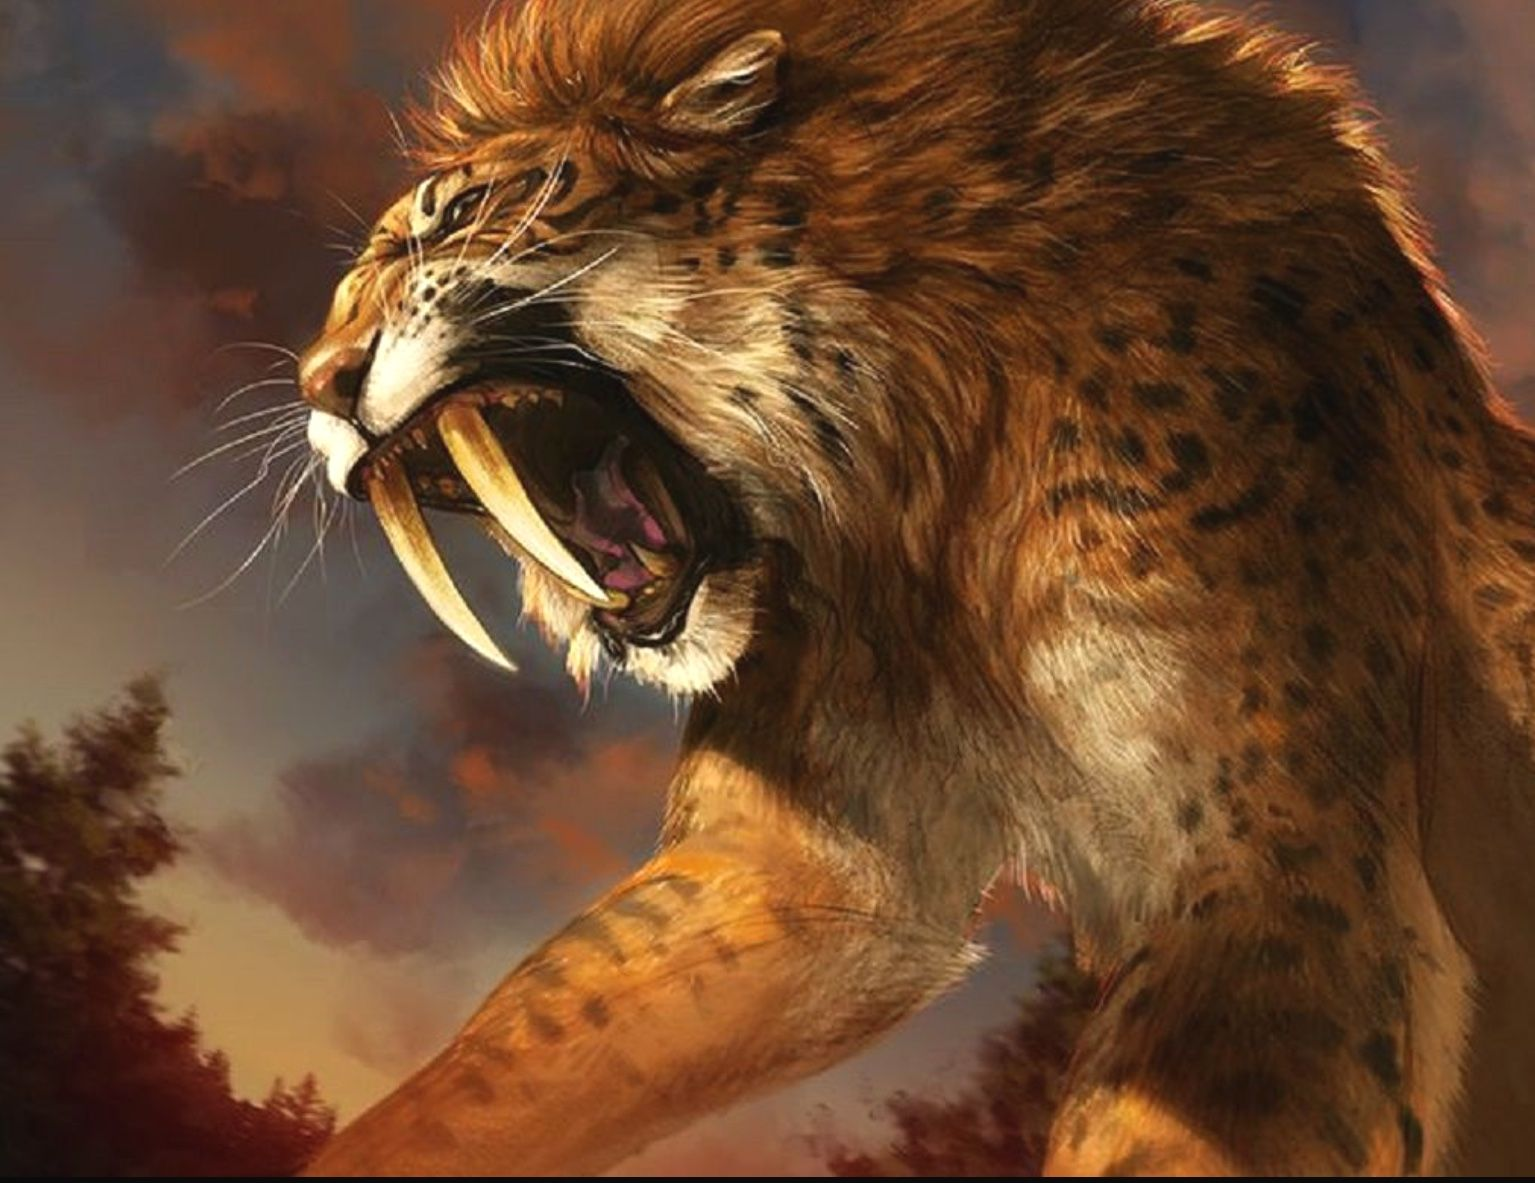 b84196417 Sabertooth cat. About the size of a tiger, but with burlier arms and  elongated fangs, smilodon stalked camels, bison, and other herbivorous prey  across ...